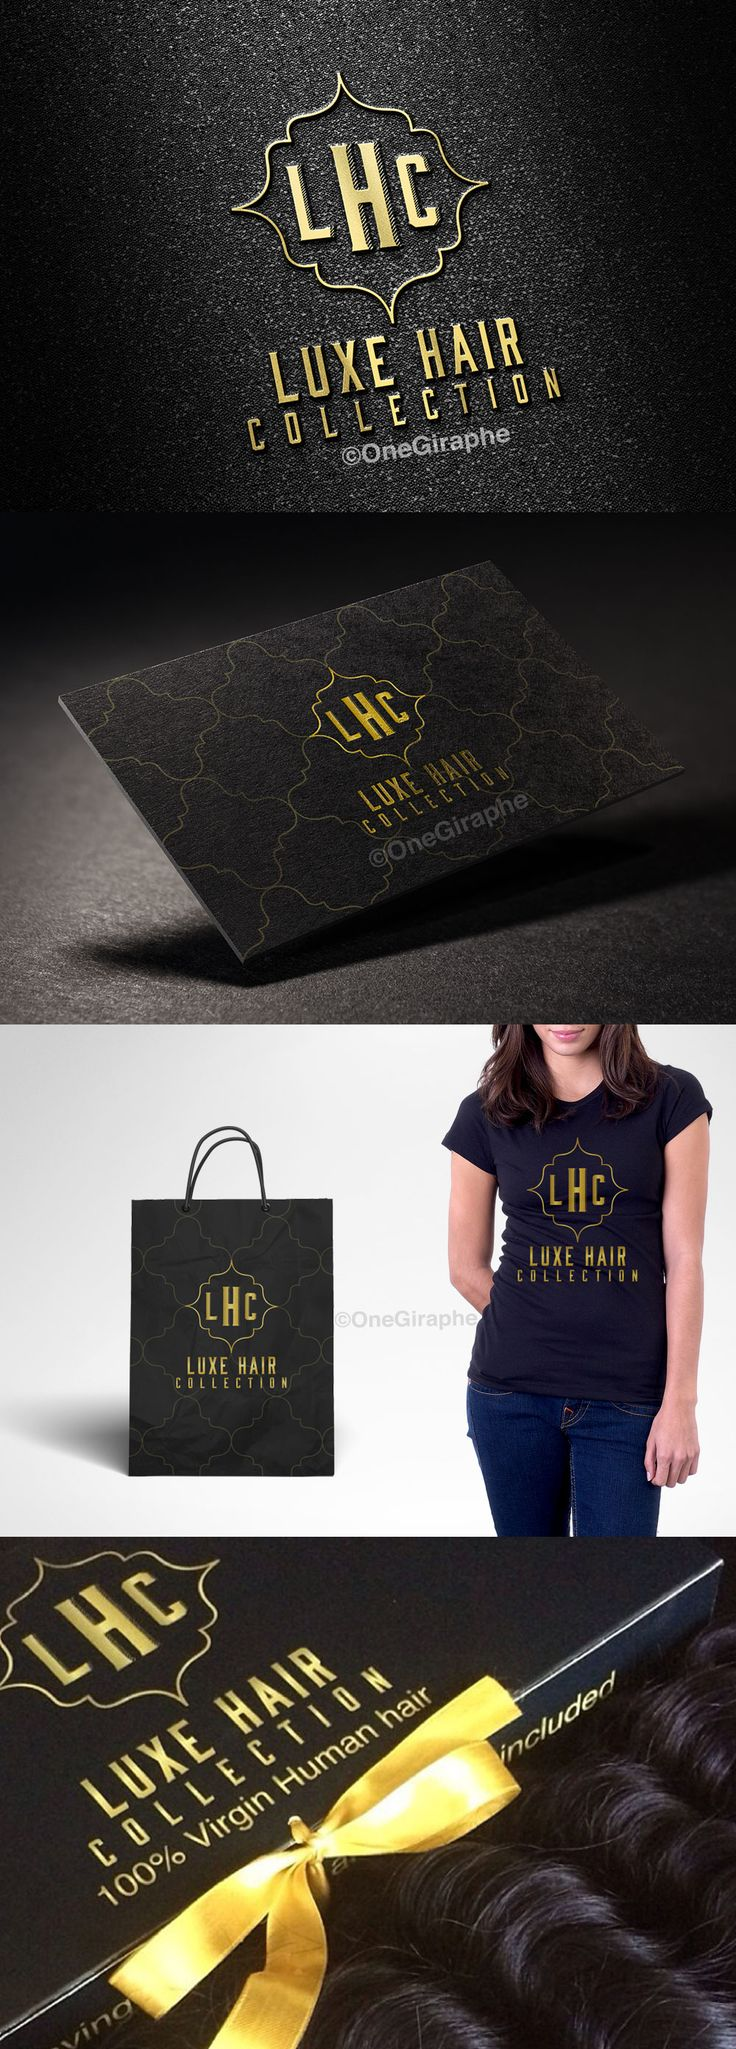 Luxe Hair Collection -Brand Identity by OneGiraphe www.One-Giraphe.com #brand #brandidentity #luxury #gold #black #branding #logo #logodesign #design #hair #cosmetics #beauty #hair #virginhair  #logo #businesscard #stationery #packaging #tshirt